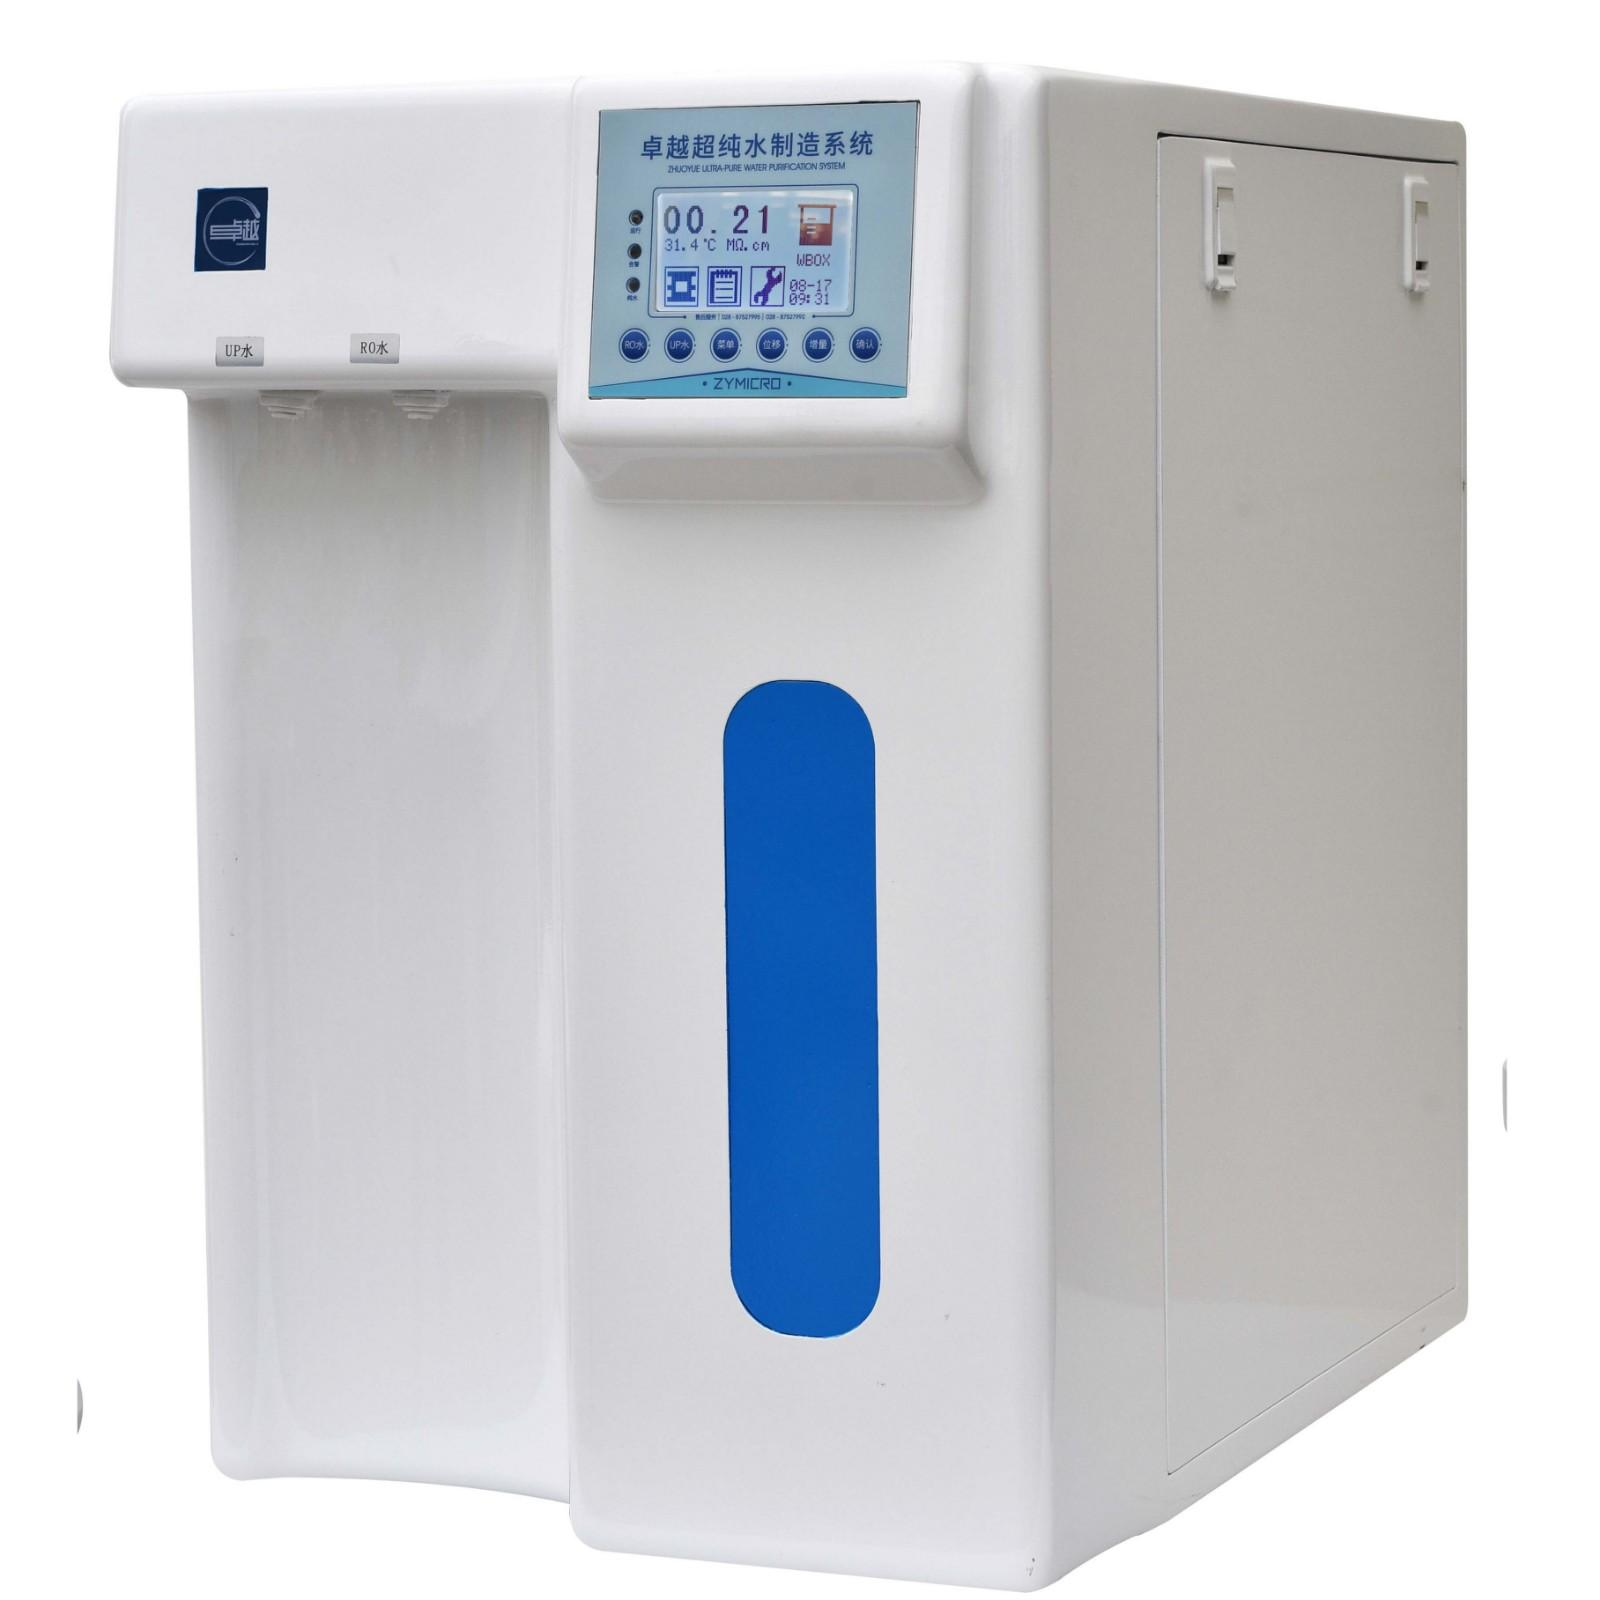 ZYMICRO ultra pure water system -Sichuan excellent water treatment